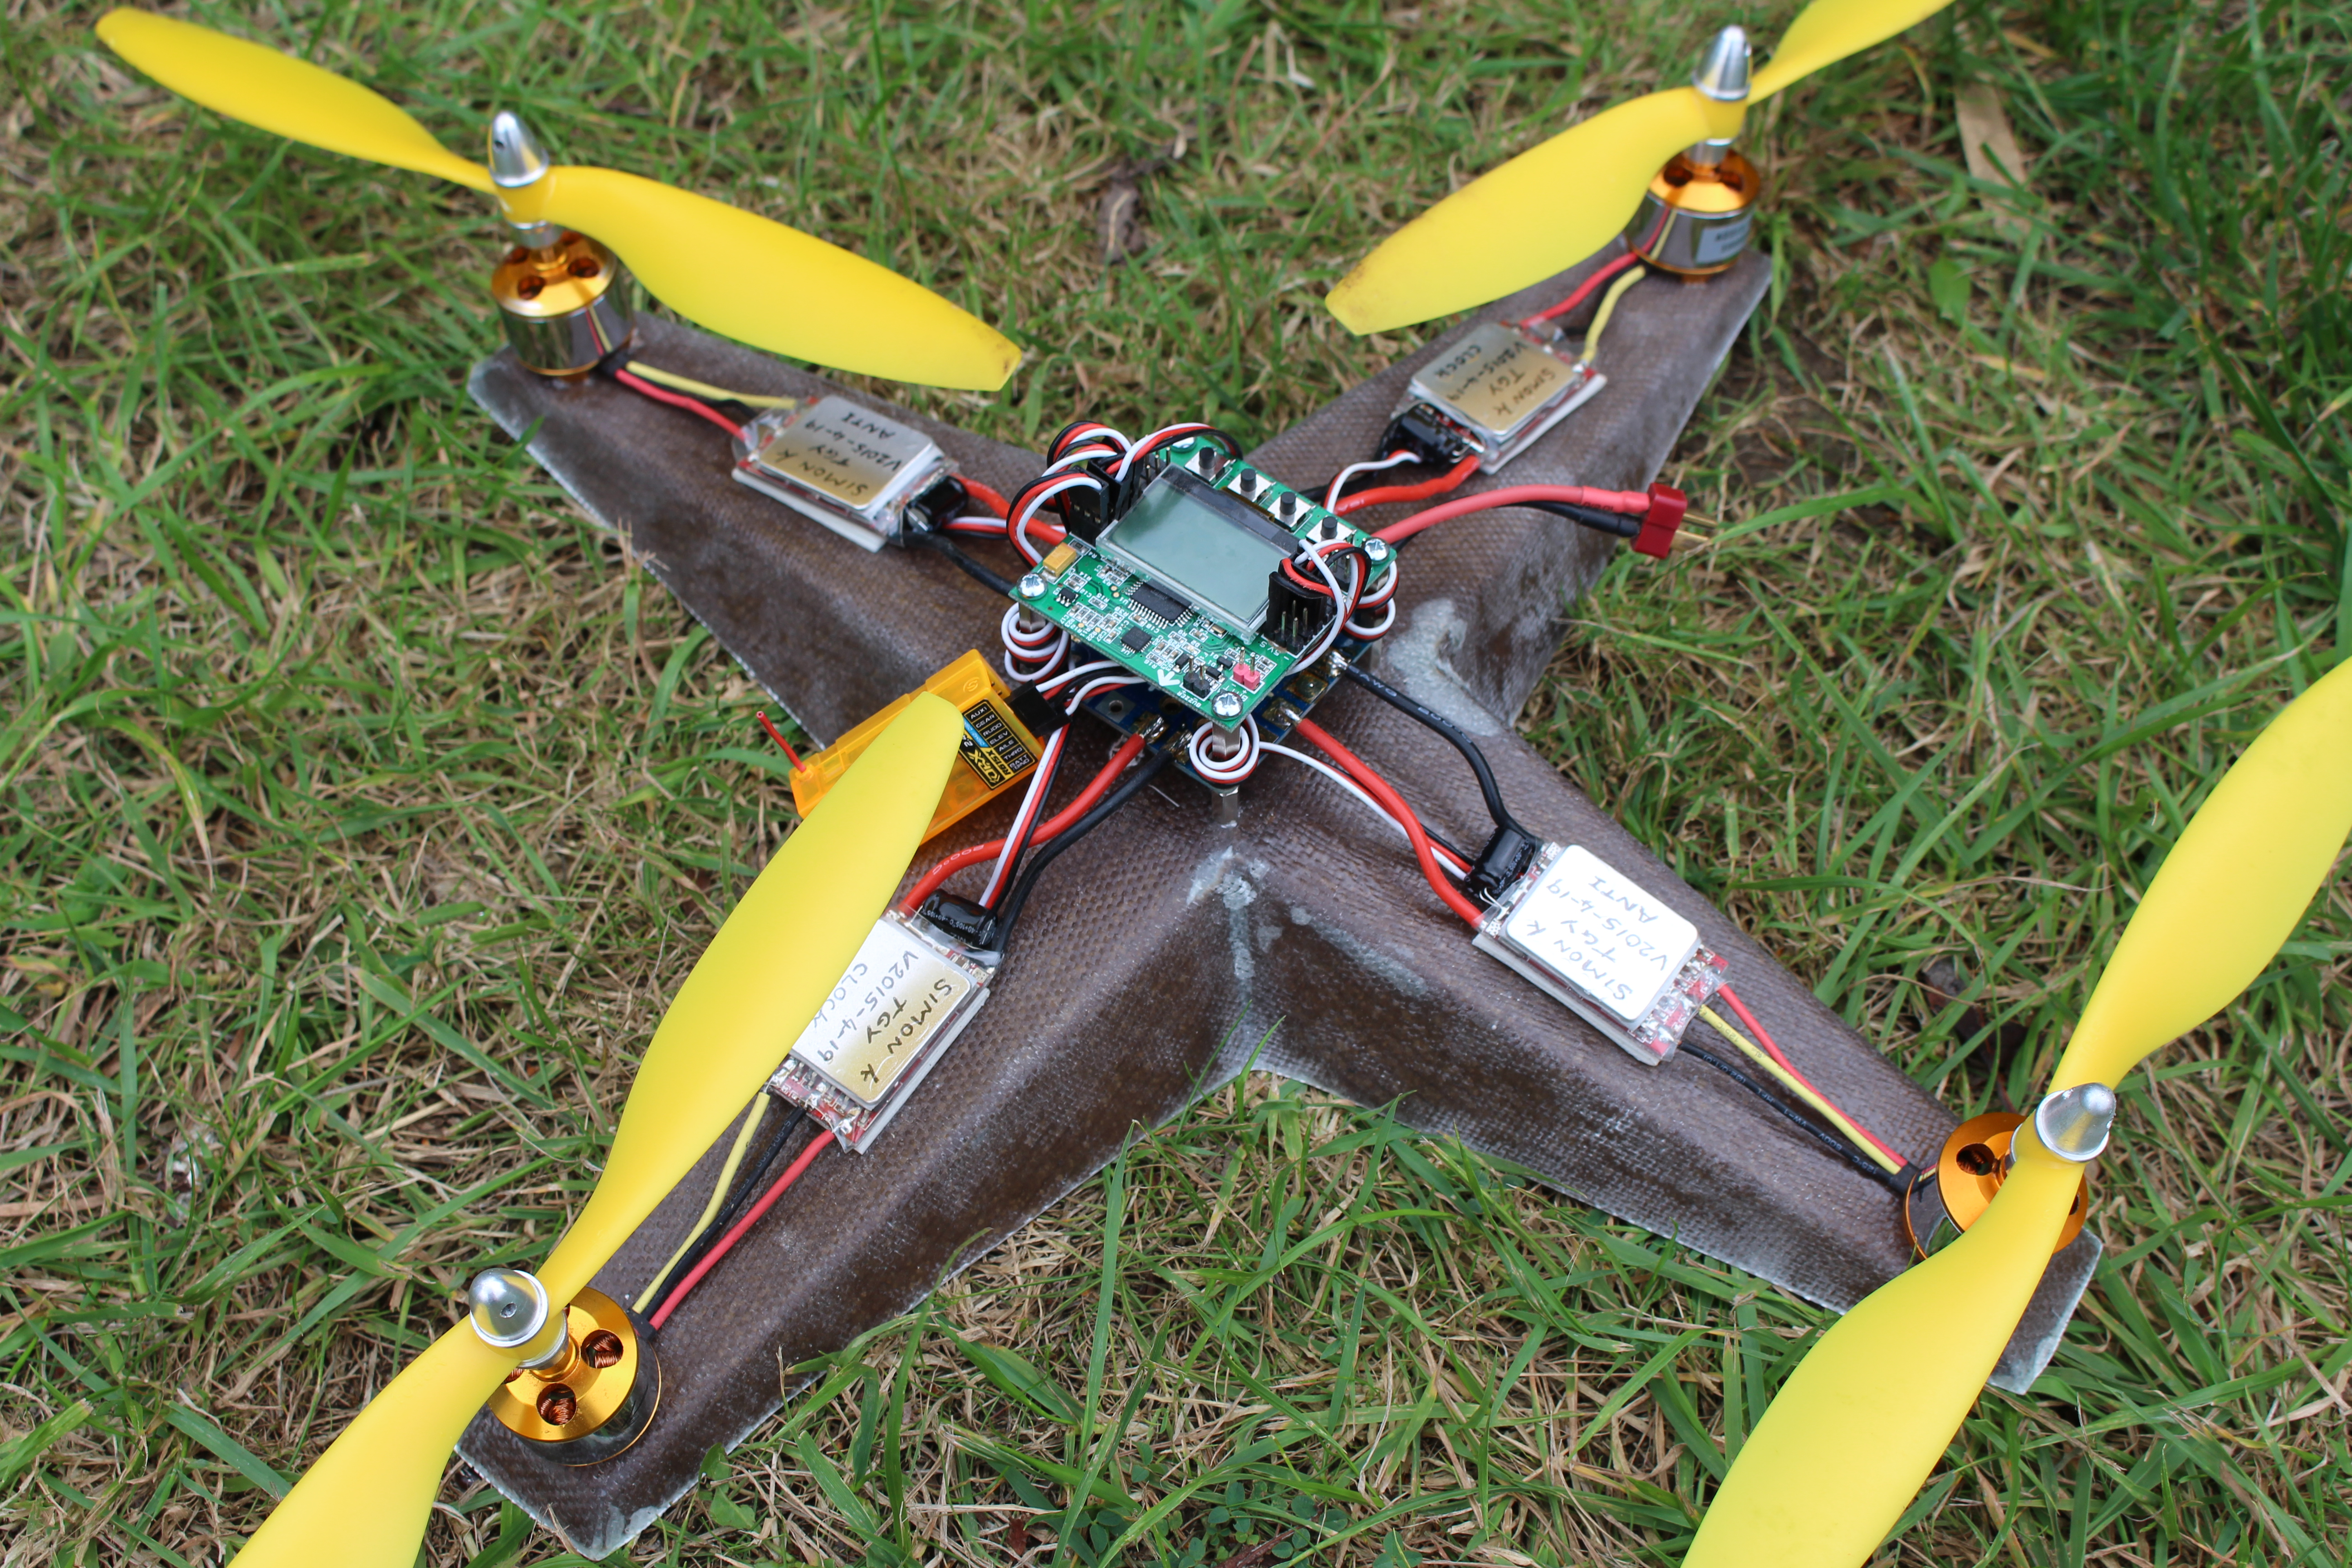 Picture of Cardboard Quadcopter.